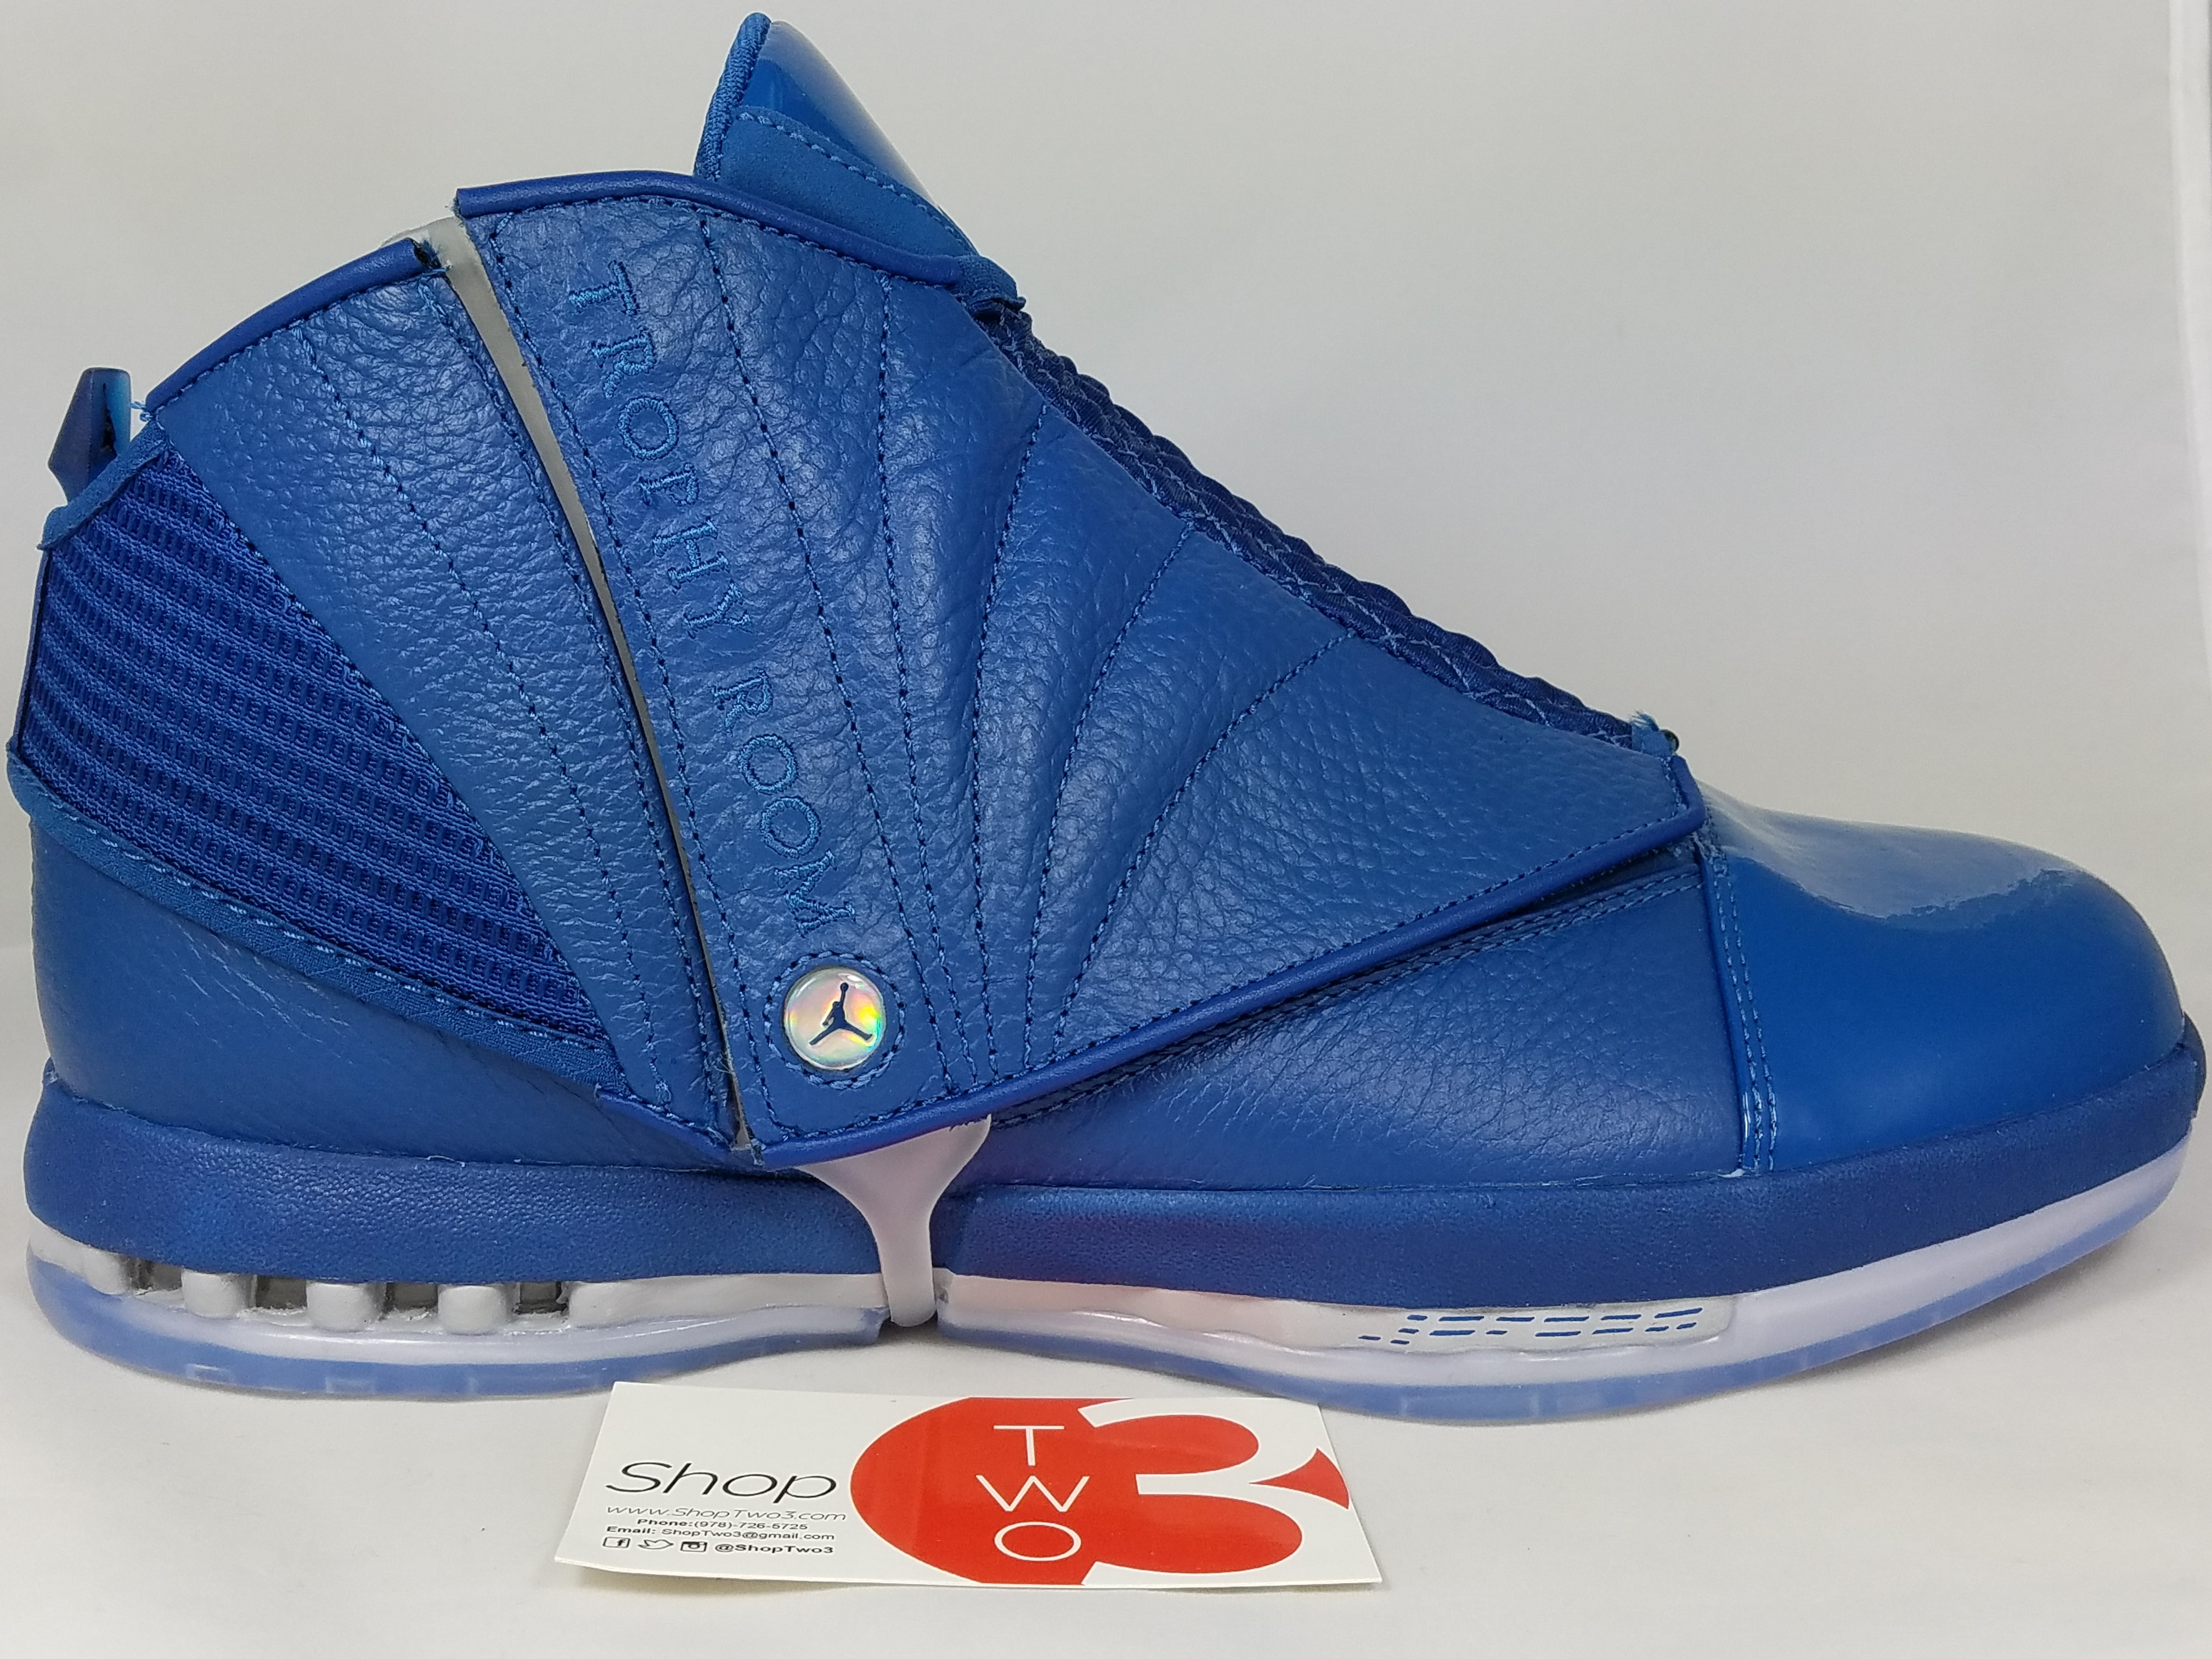 finest selection 9ac27 e8213 ... coupon for air jordan 16 retro trophy room french blue. image of air  jordan 16